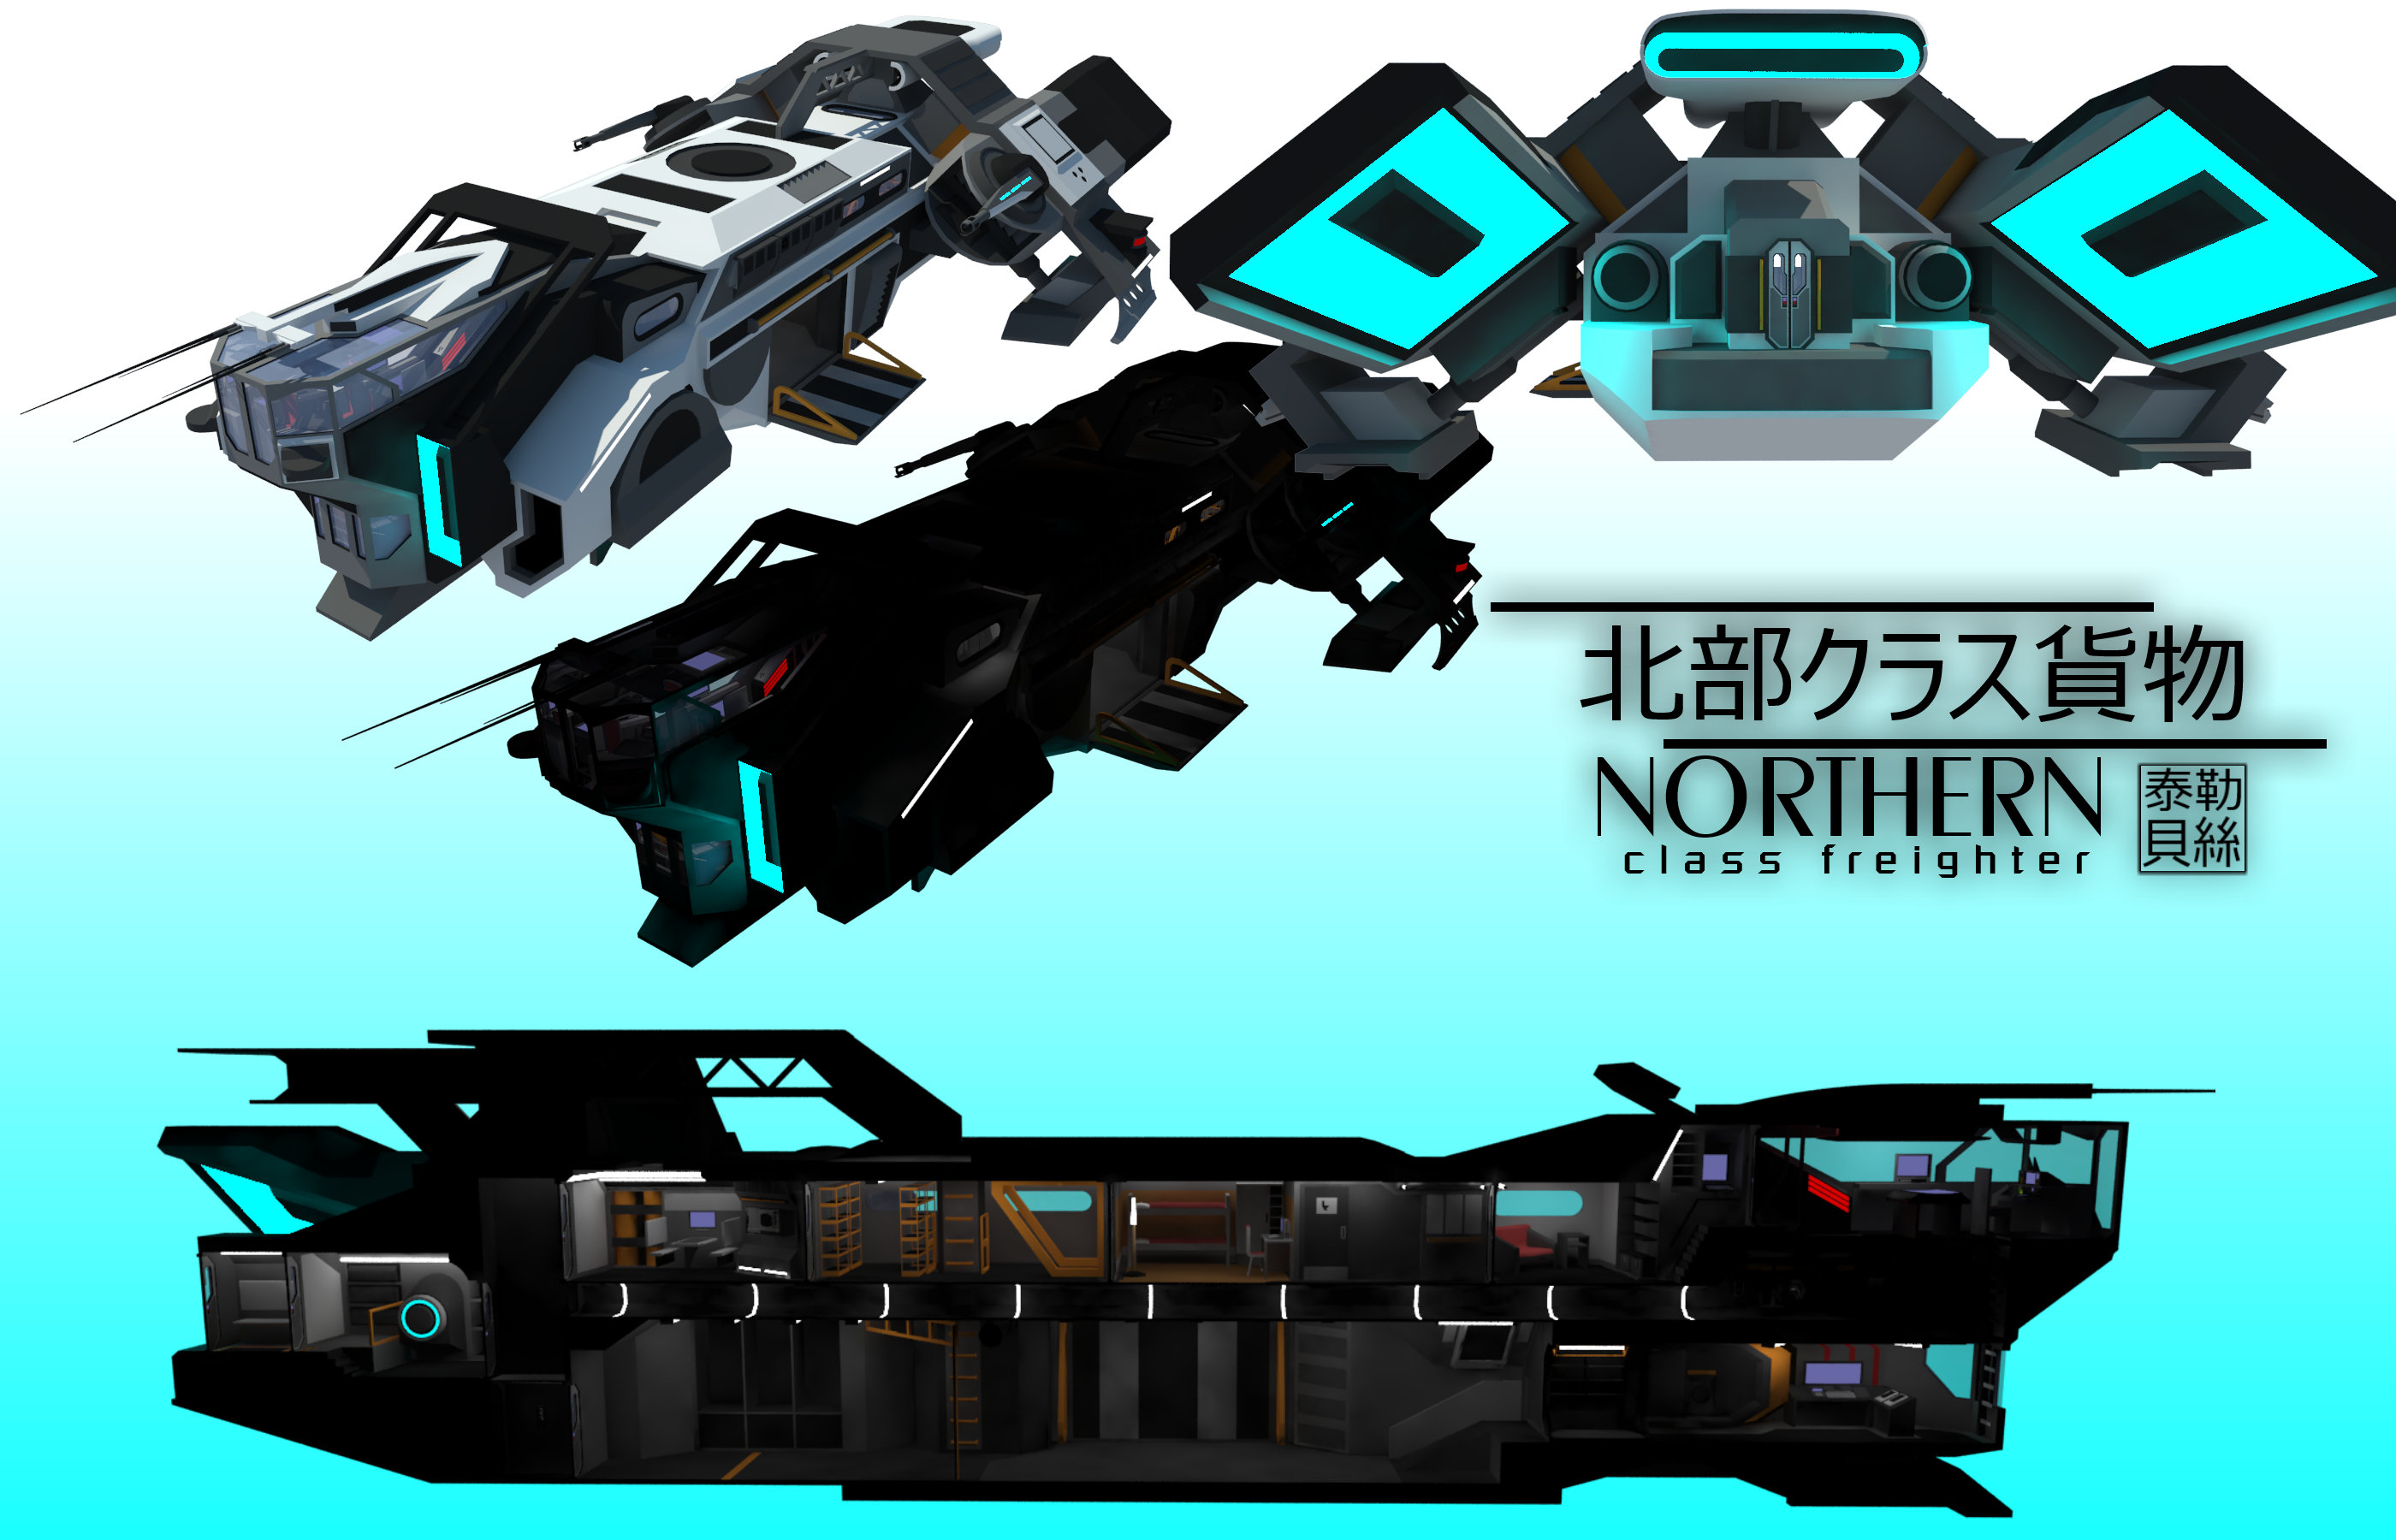 Northern Class Freighter by Gwentari